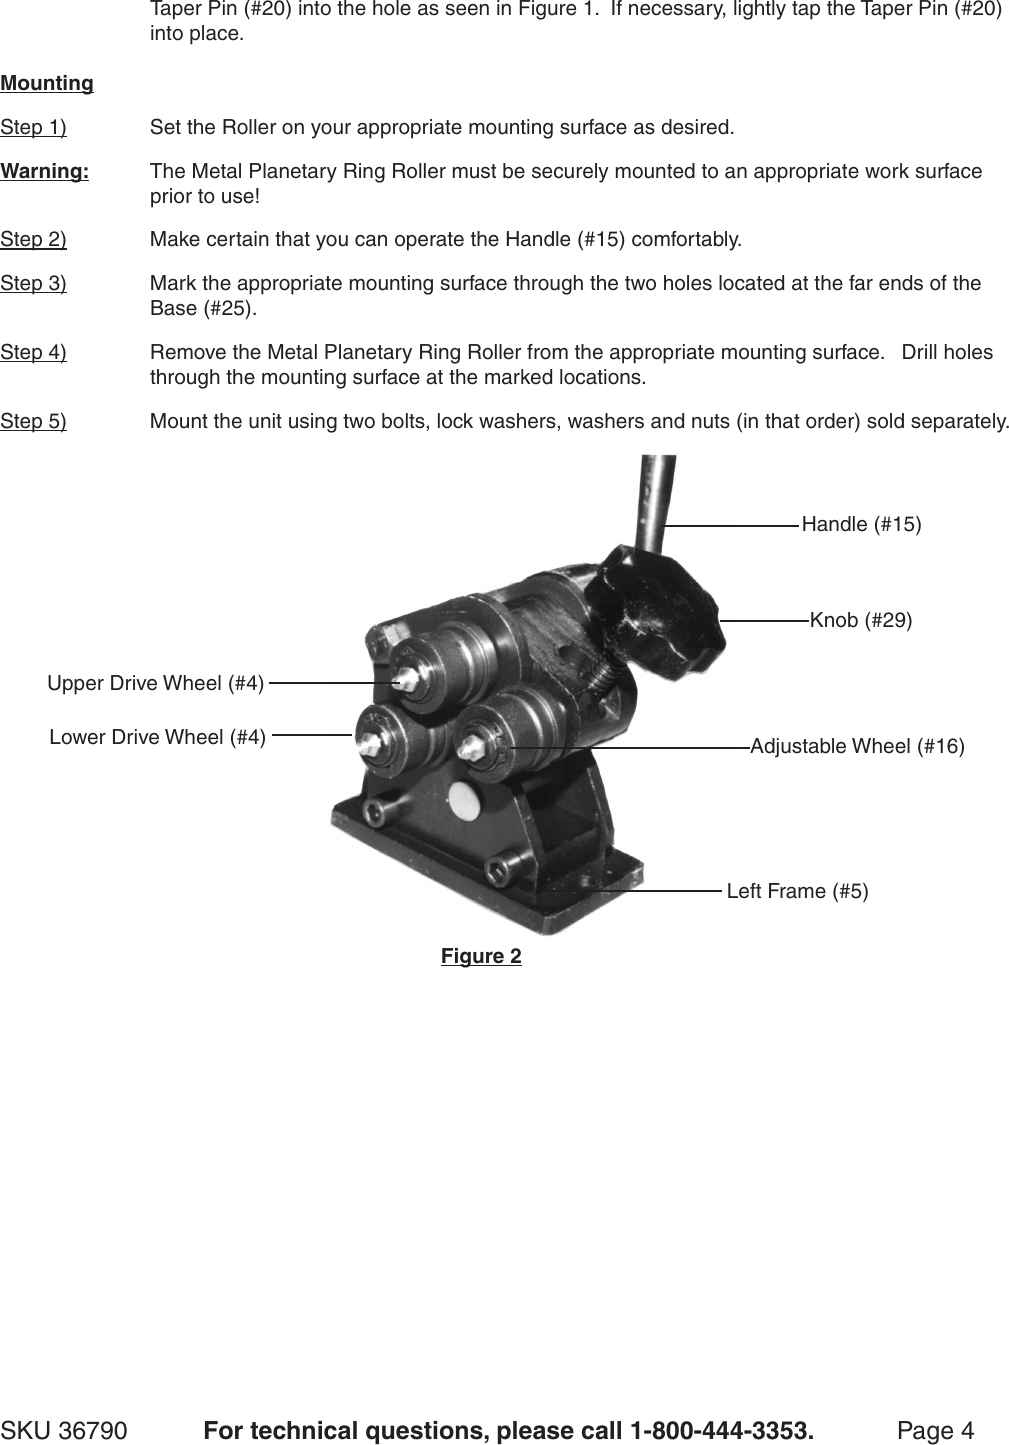 Harbor Freight Gear Driven Ring Roller Product Manual